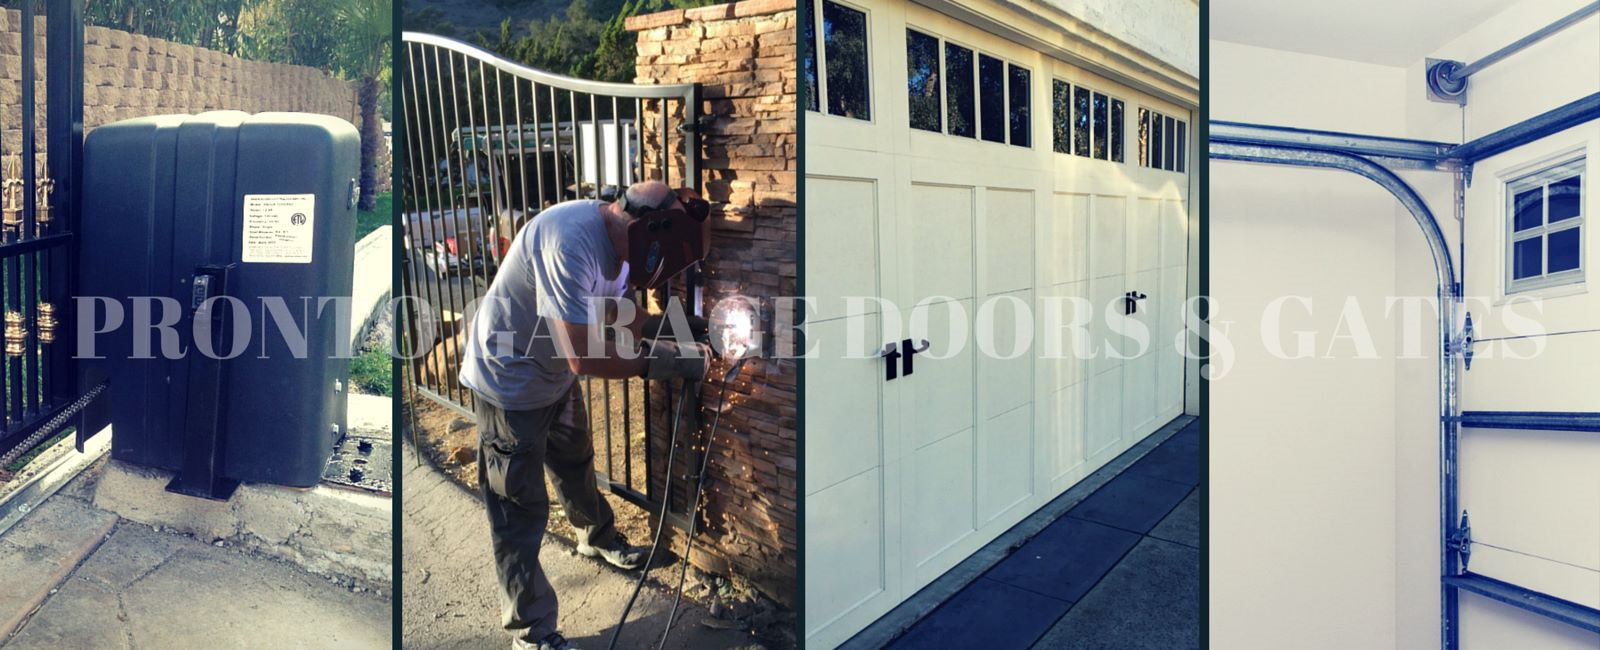 Garage Doors Gates Services San Diego Countypronto Garage Doors